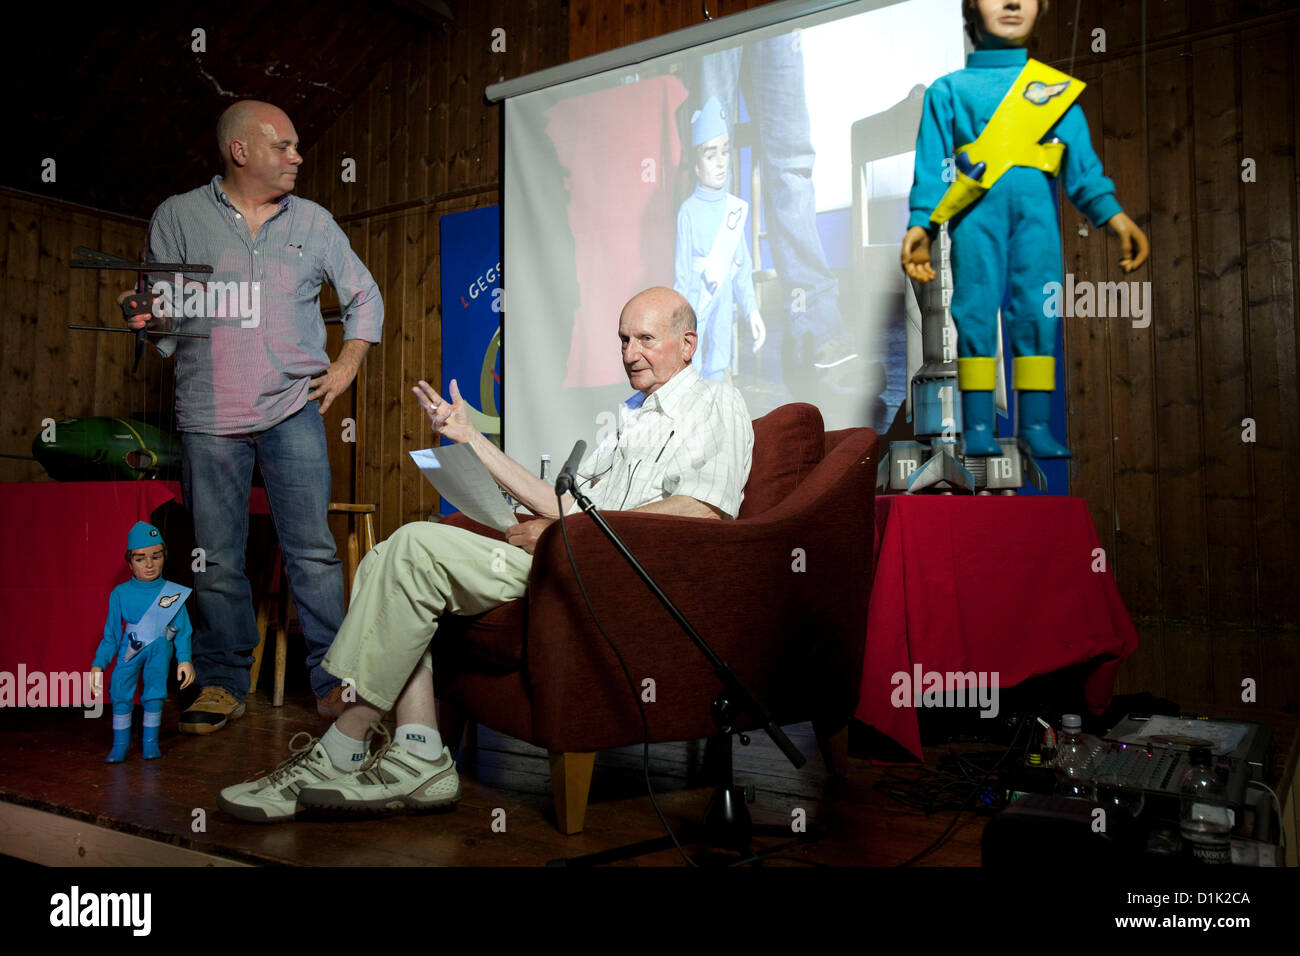 Gerry Anderson, creator of  the TV series Thunderbirds and Stingray at the Wootton talks.  Died 26th December 2012 - Stock Image